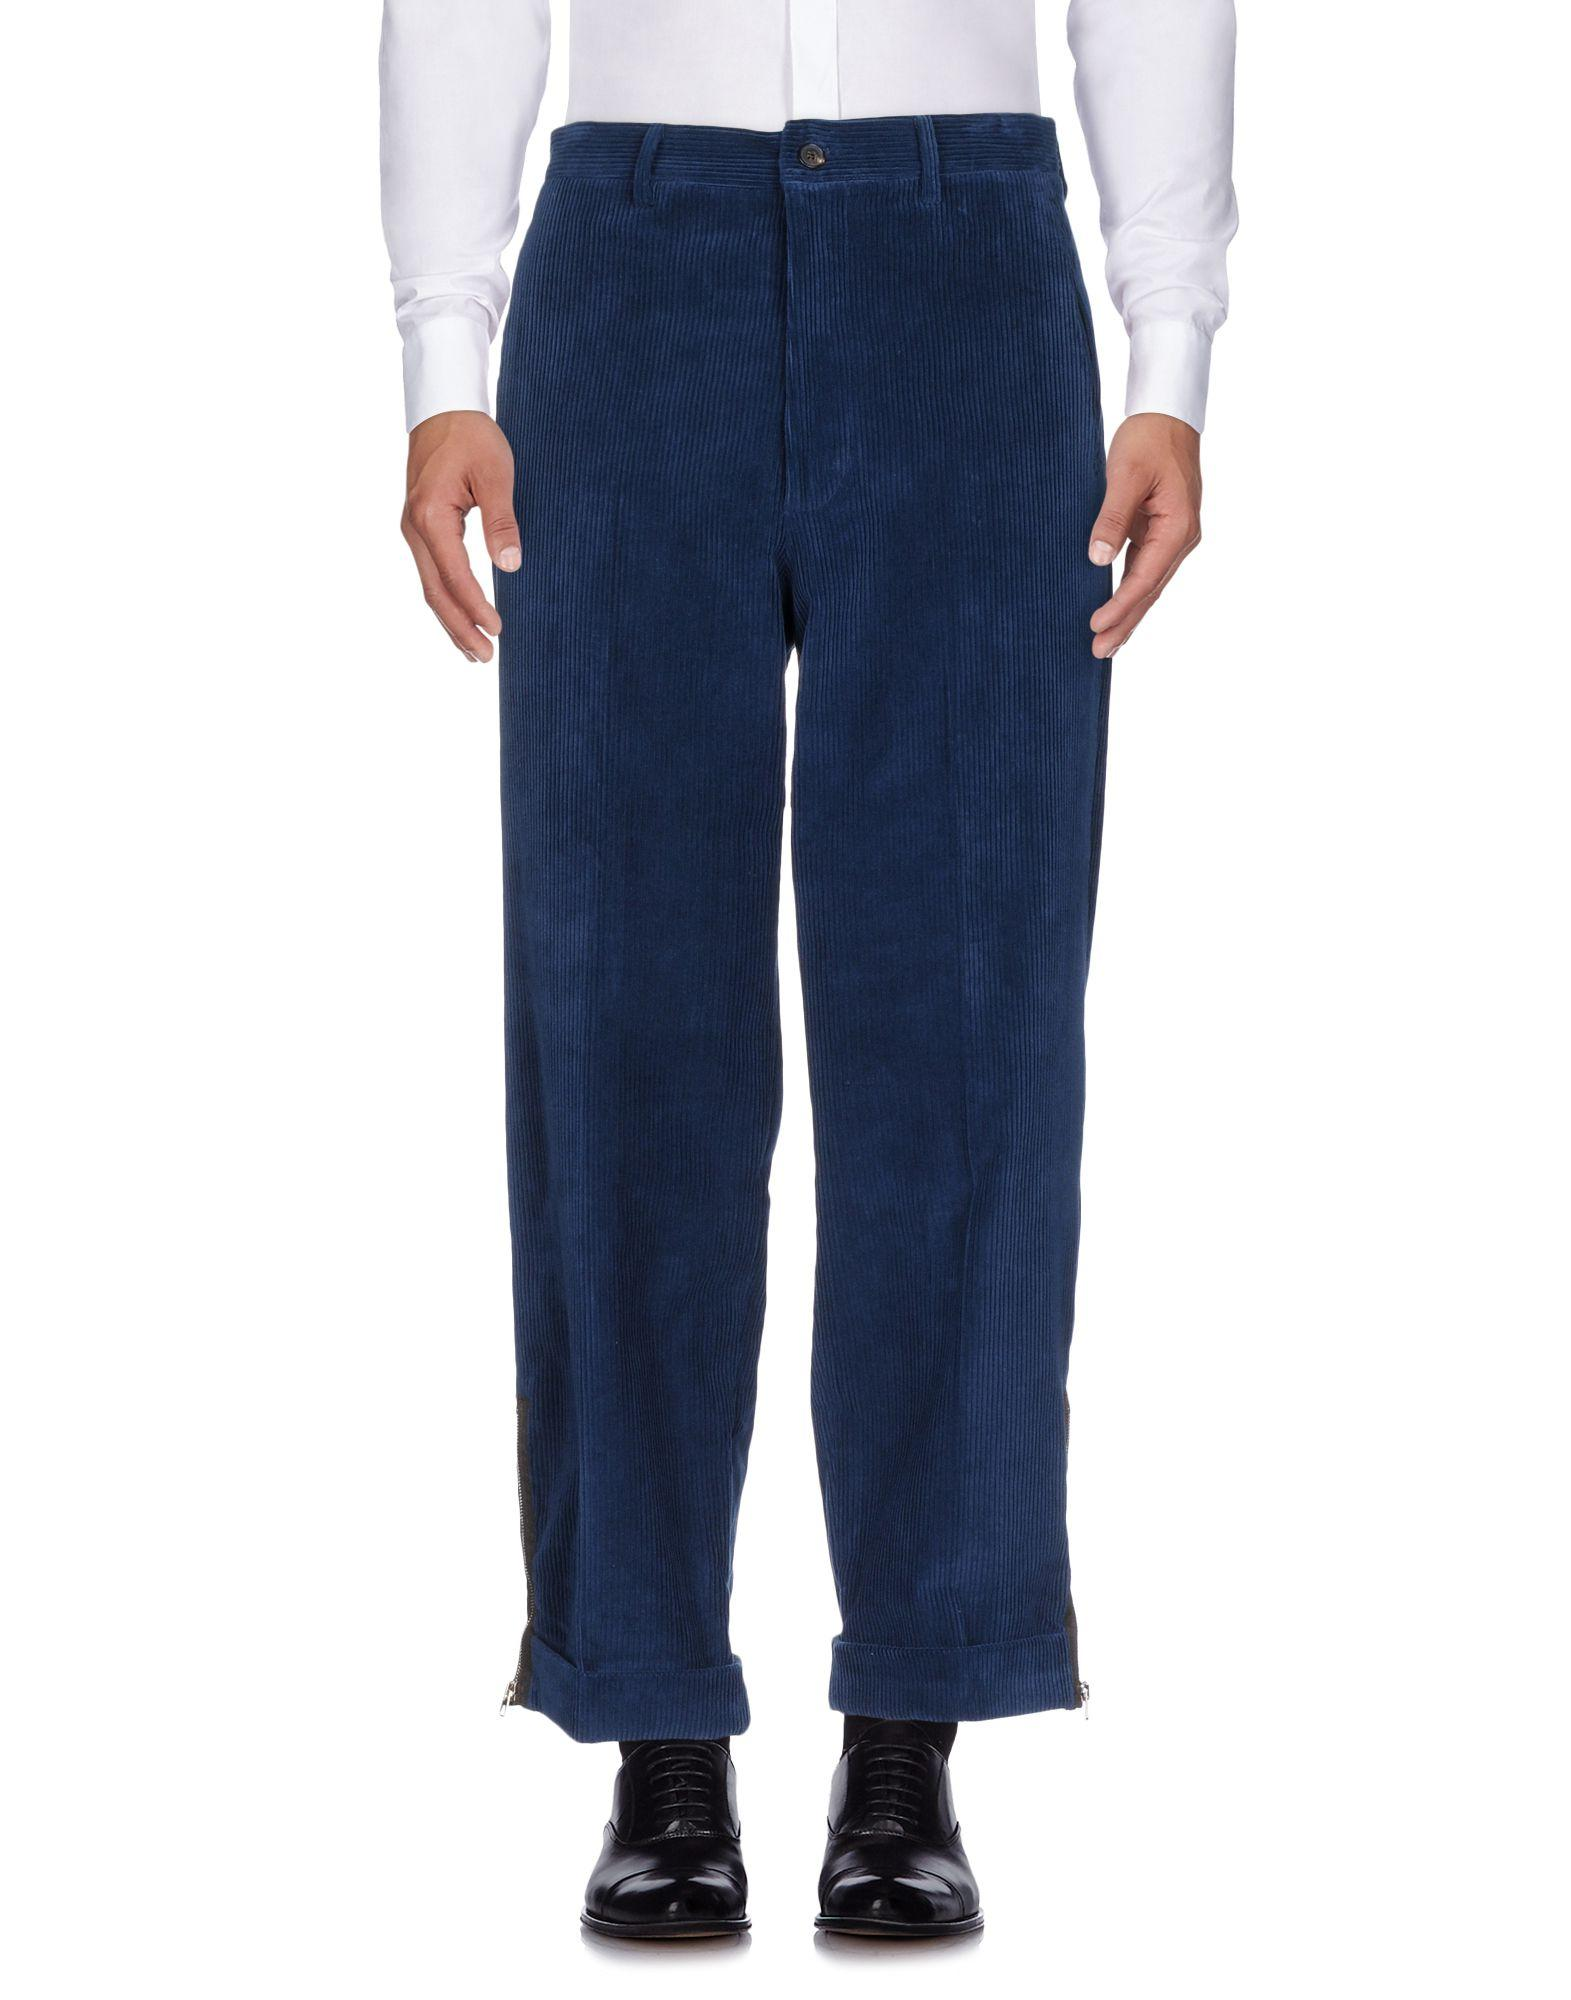 Umit Benan Casual Pants In Slate Blue